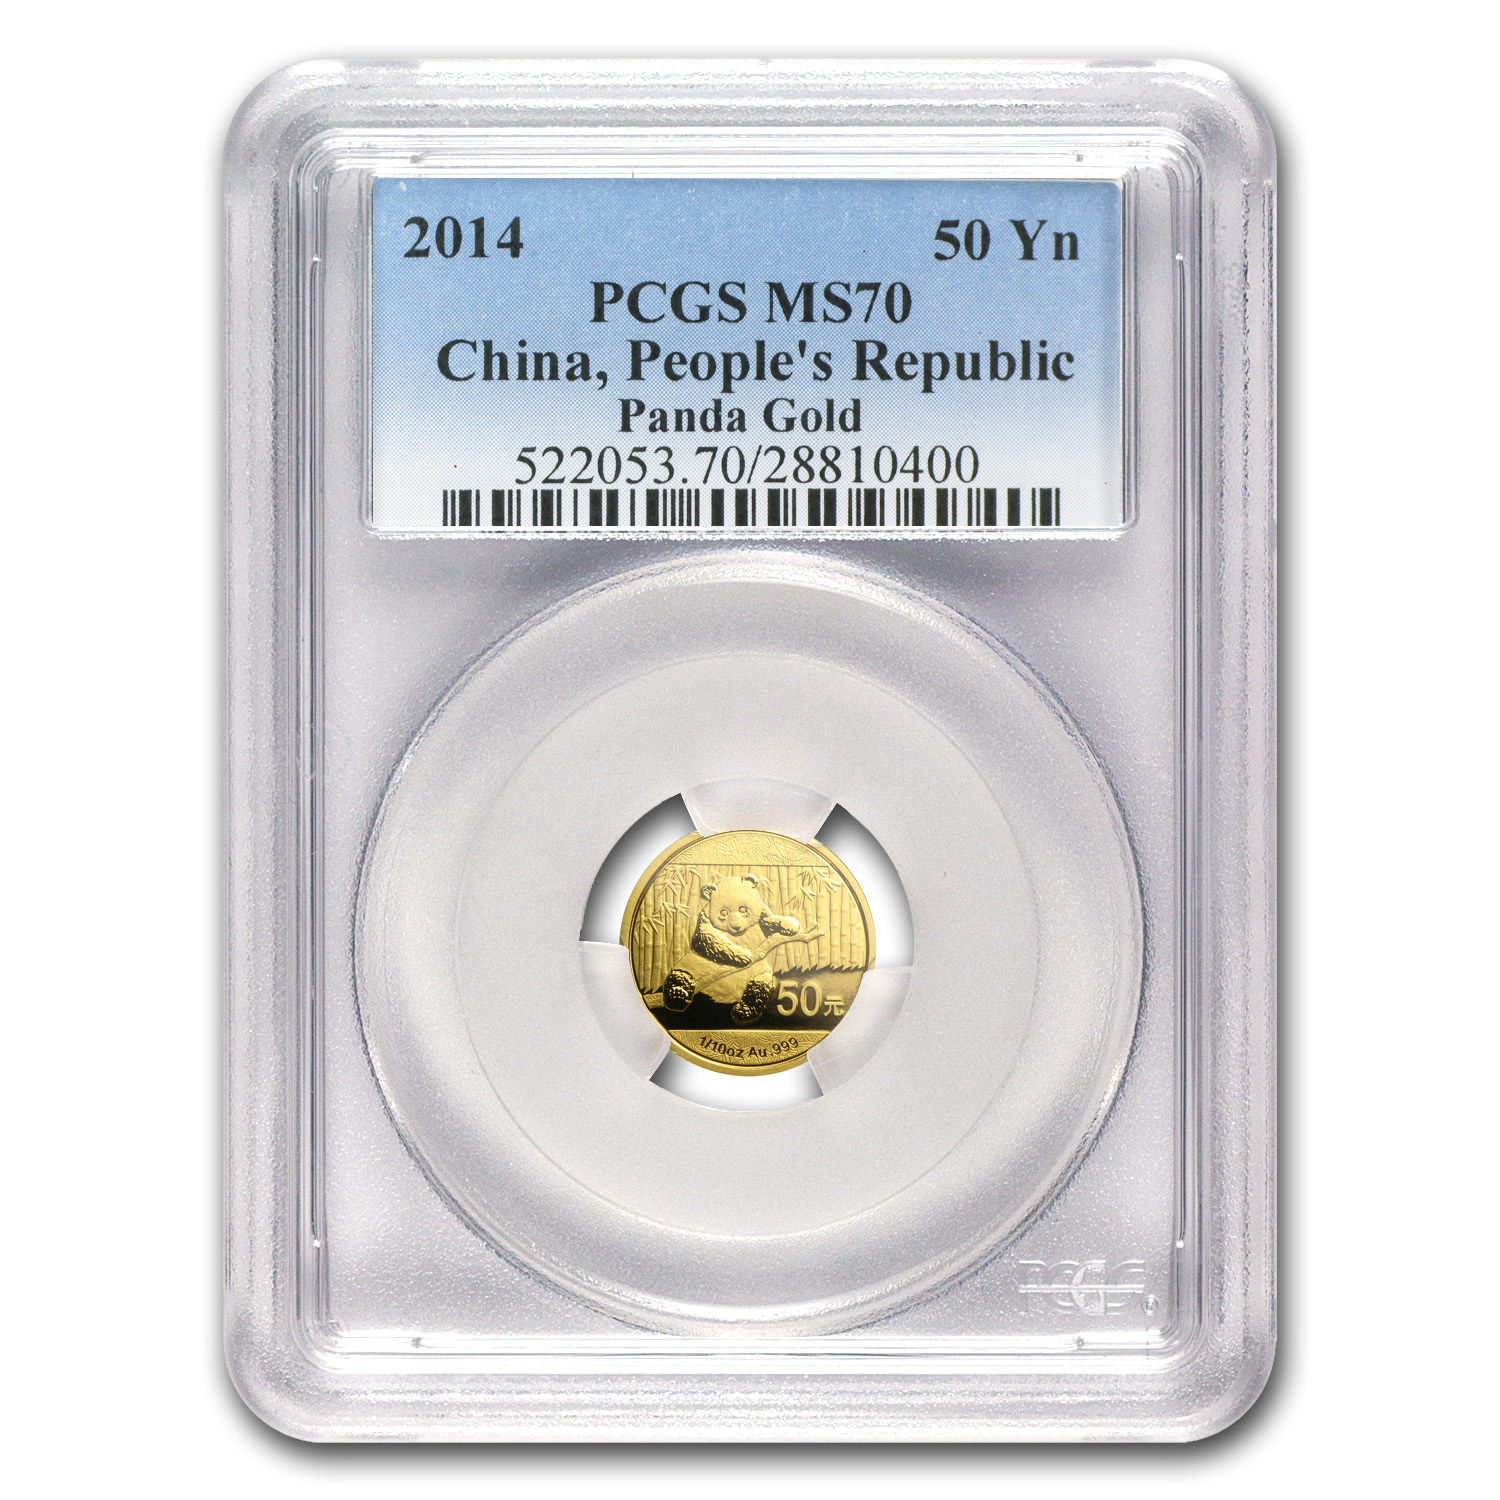 2014 (1/10 oz) Gold Chinese Panda - MS-70 PCGS